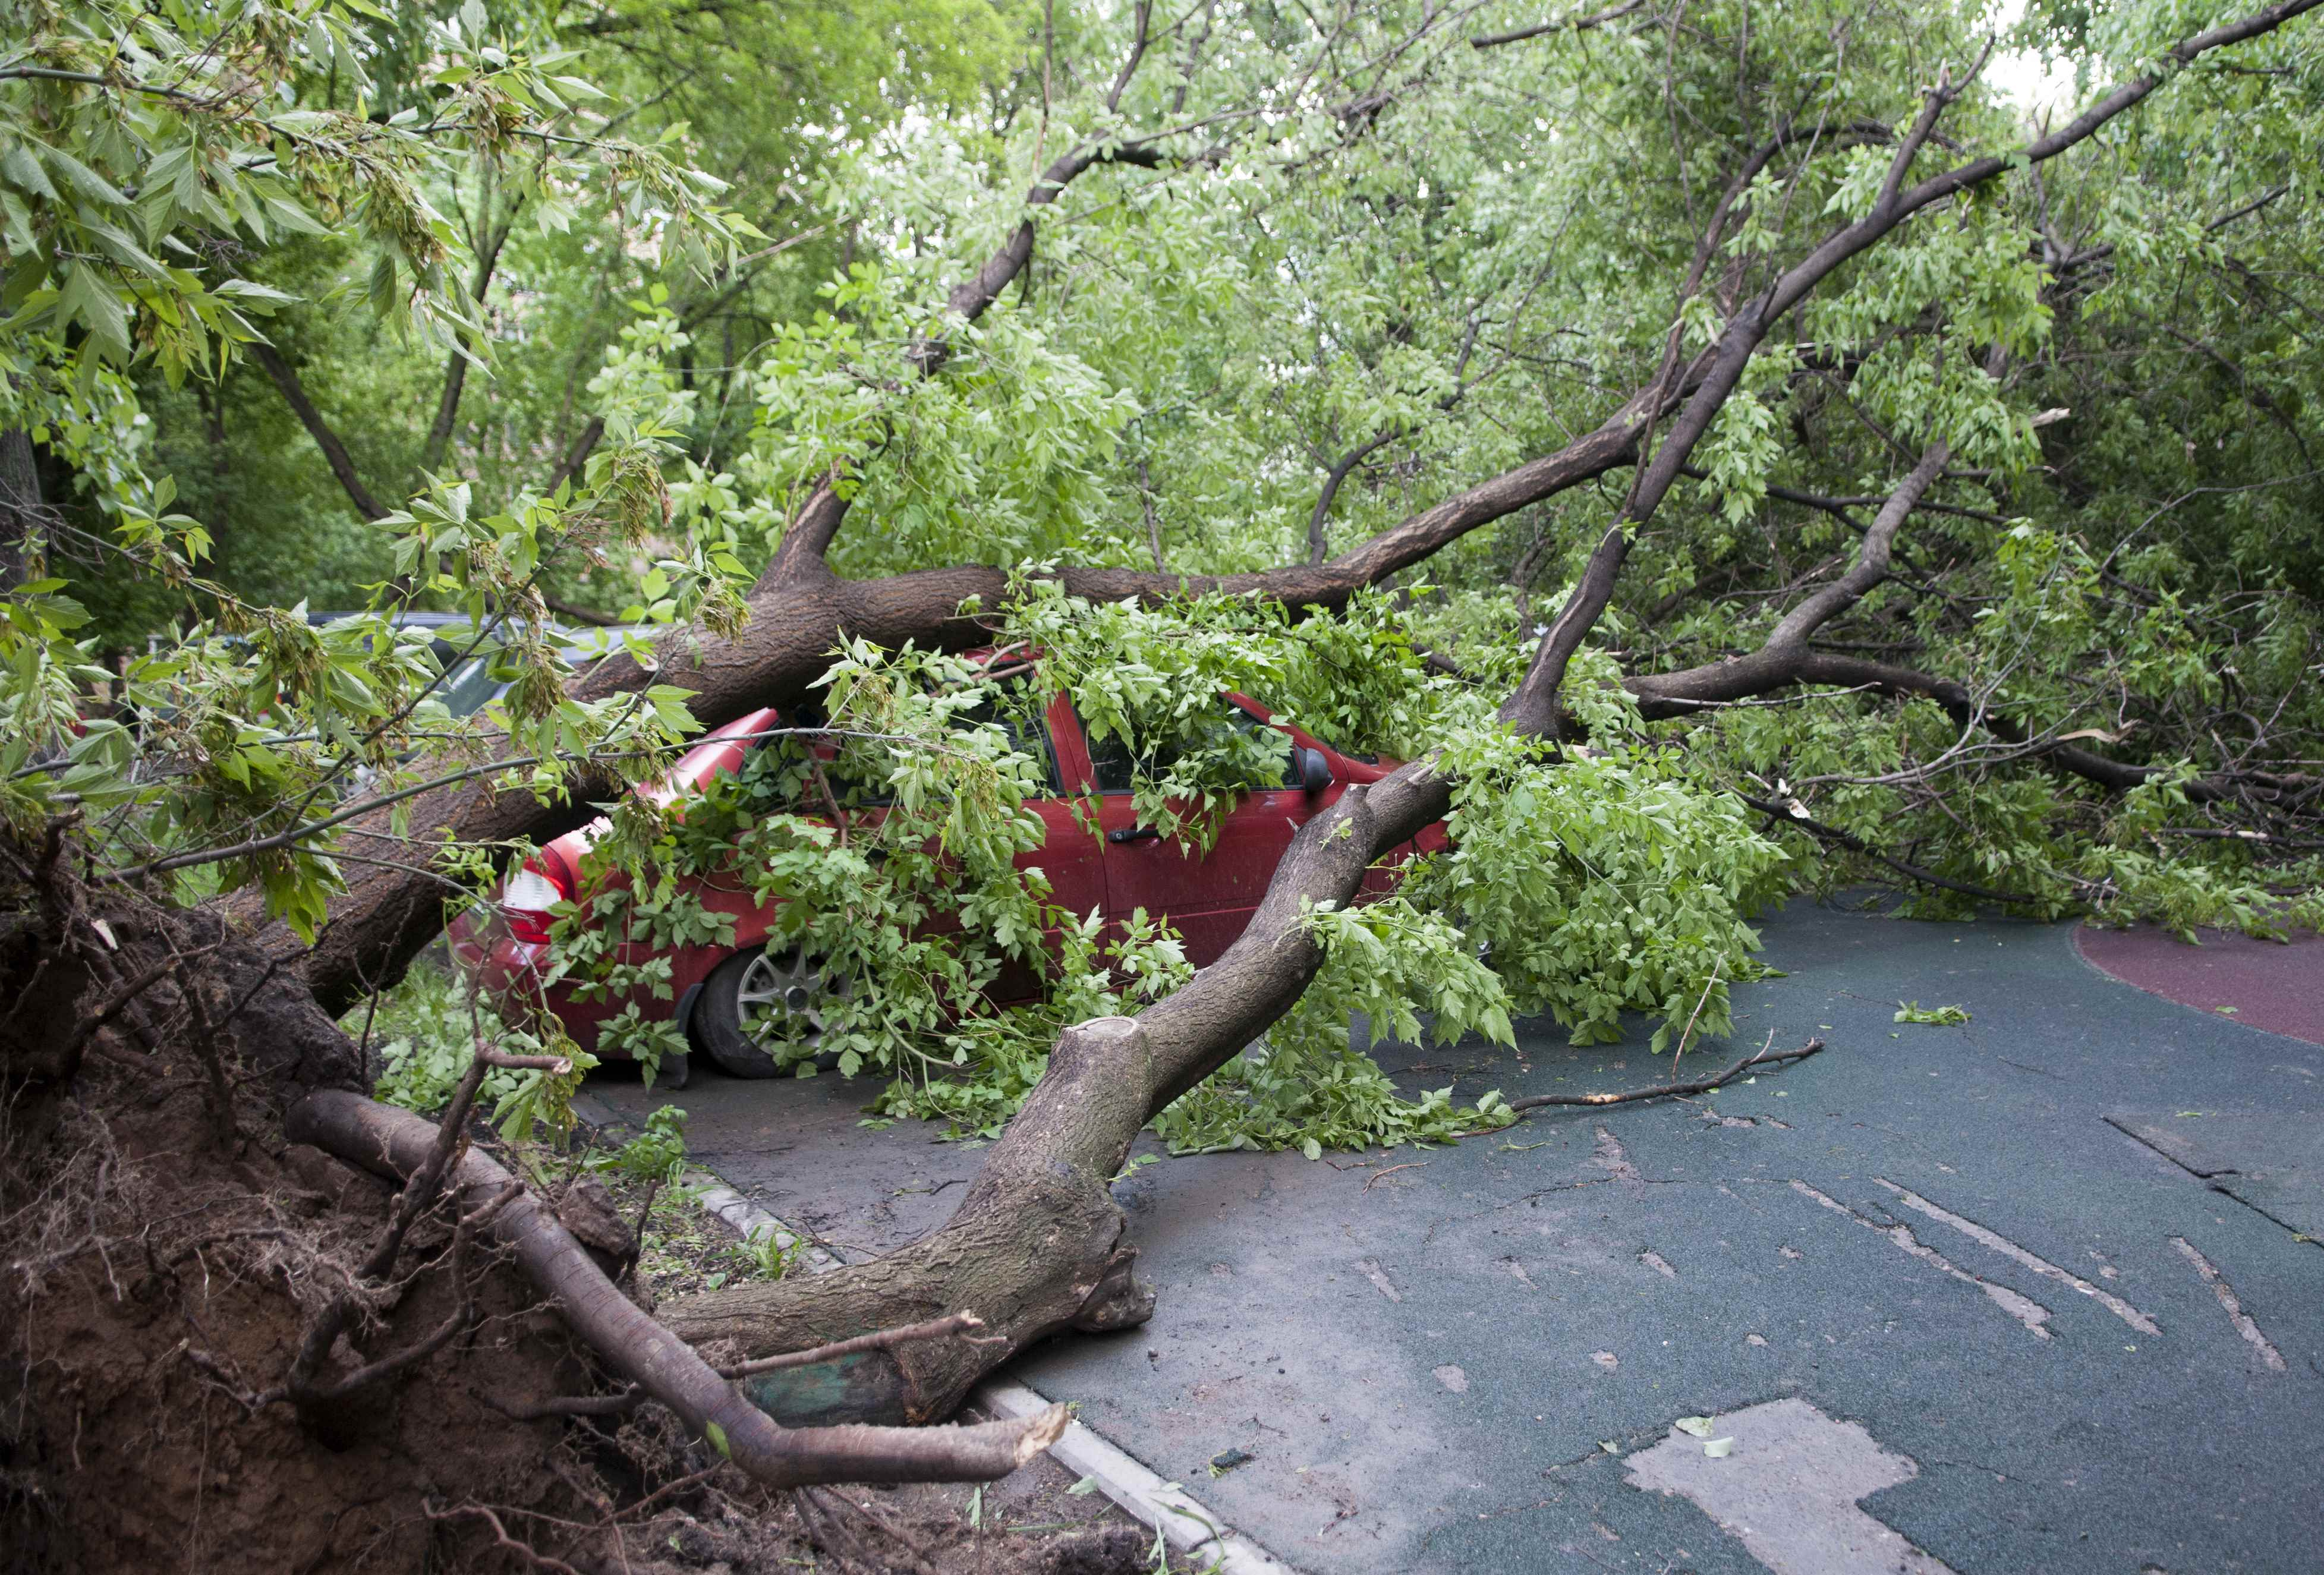 A tree, which was uprooted by a heavy storm and fell down on a car, in Moscow, Russia on May 29, 2017. (REUTERS/Andrey Kuzmin)